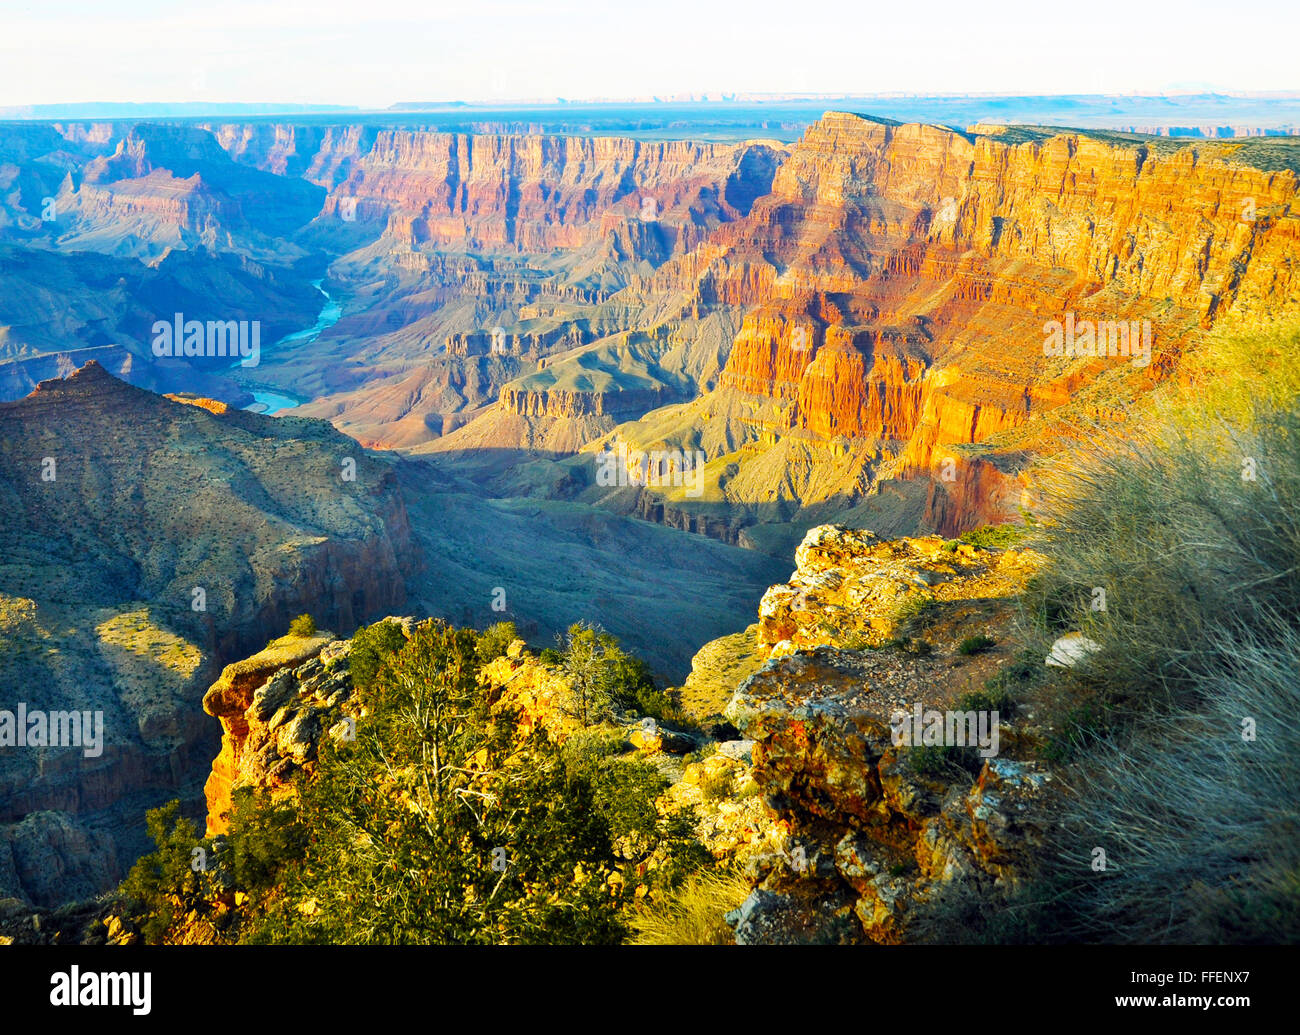 Grand Canyon,abruptes canyon creusé par la rivière Colorado Arizona. Habitée par des Indiens des Photo Stock